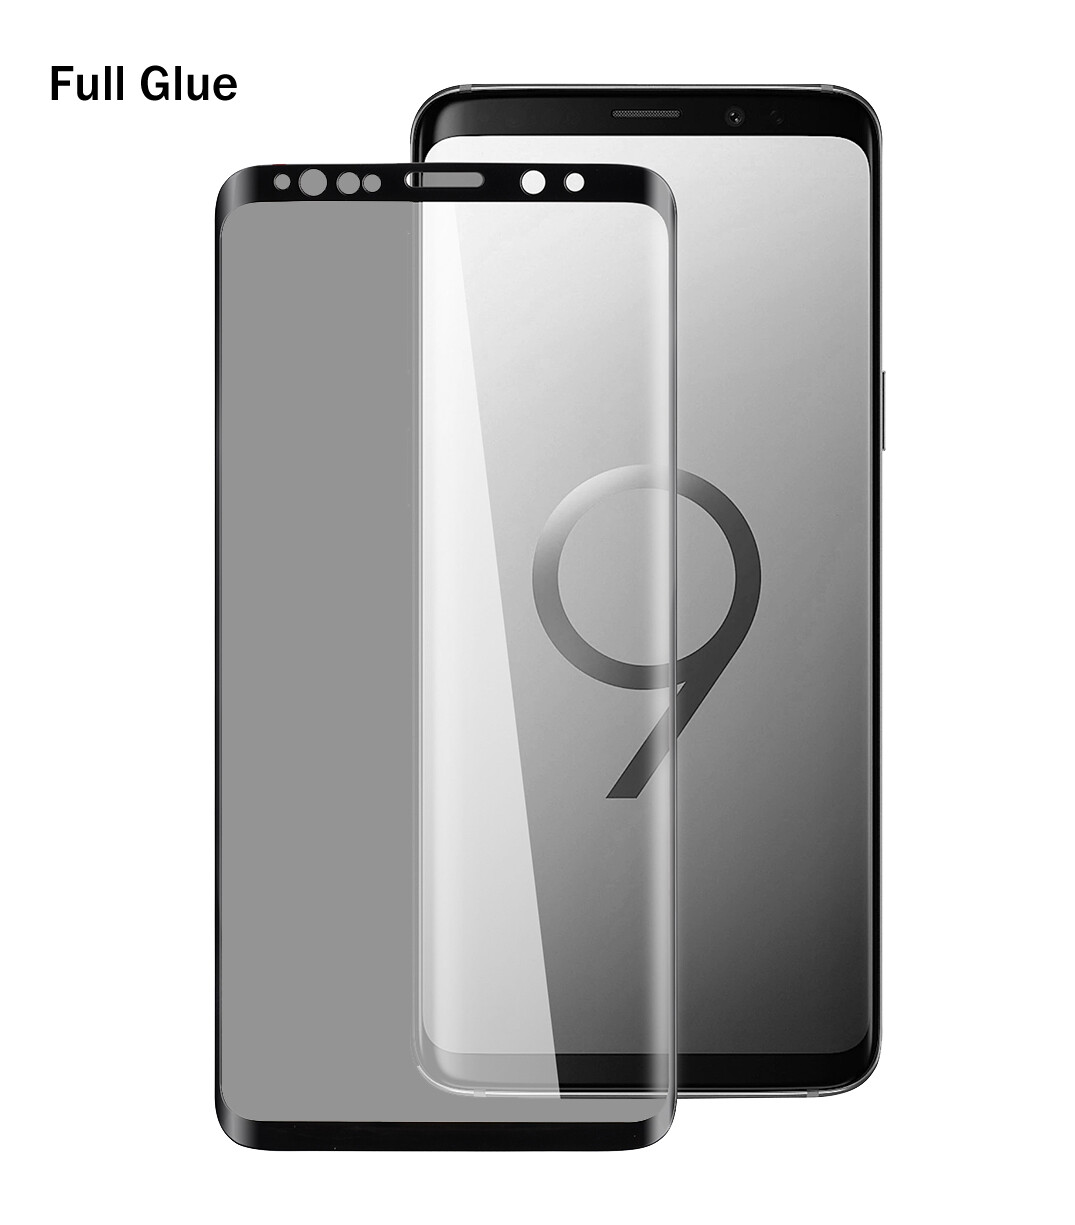 Samsung S10 3D Full Glue Glass Screen Protector ( 5 Pack )